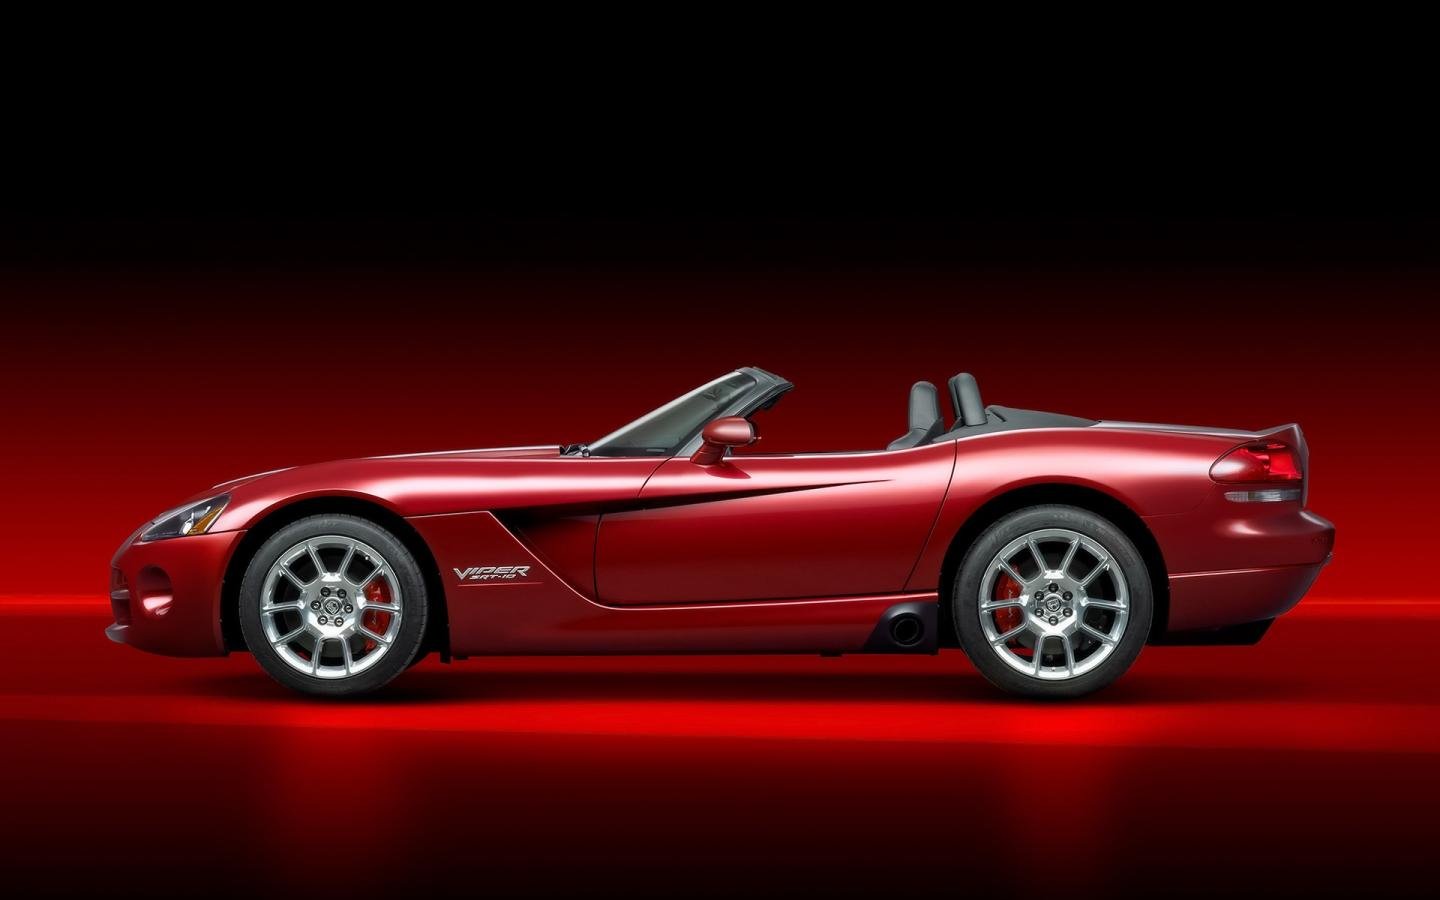 2008 Dodge Viper Srt10 Roadster Side 1440x900